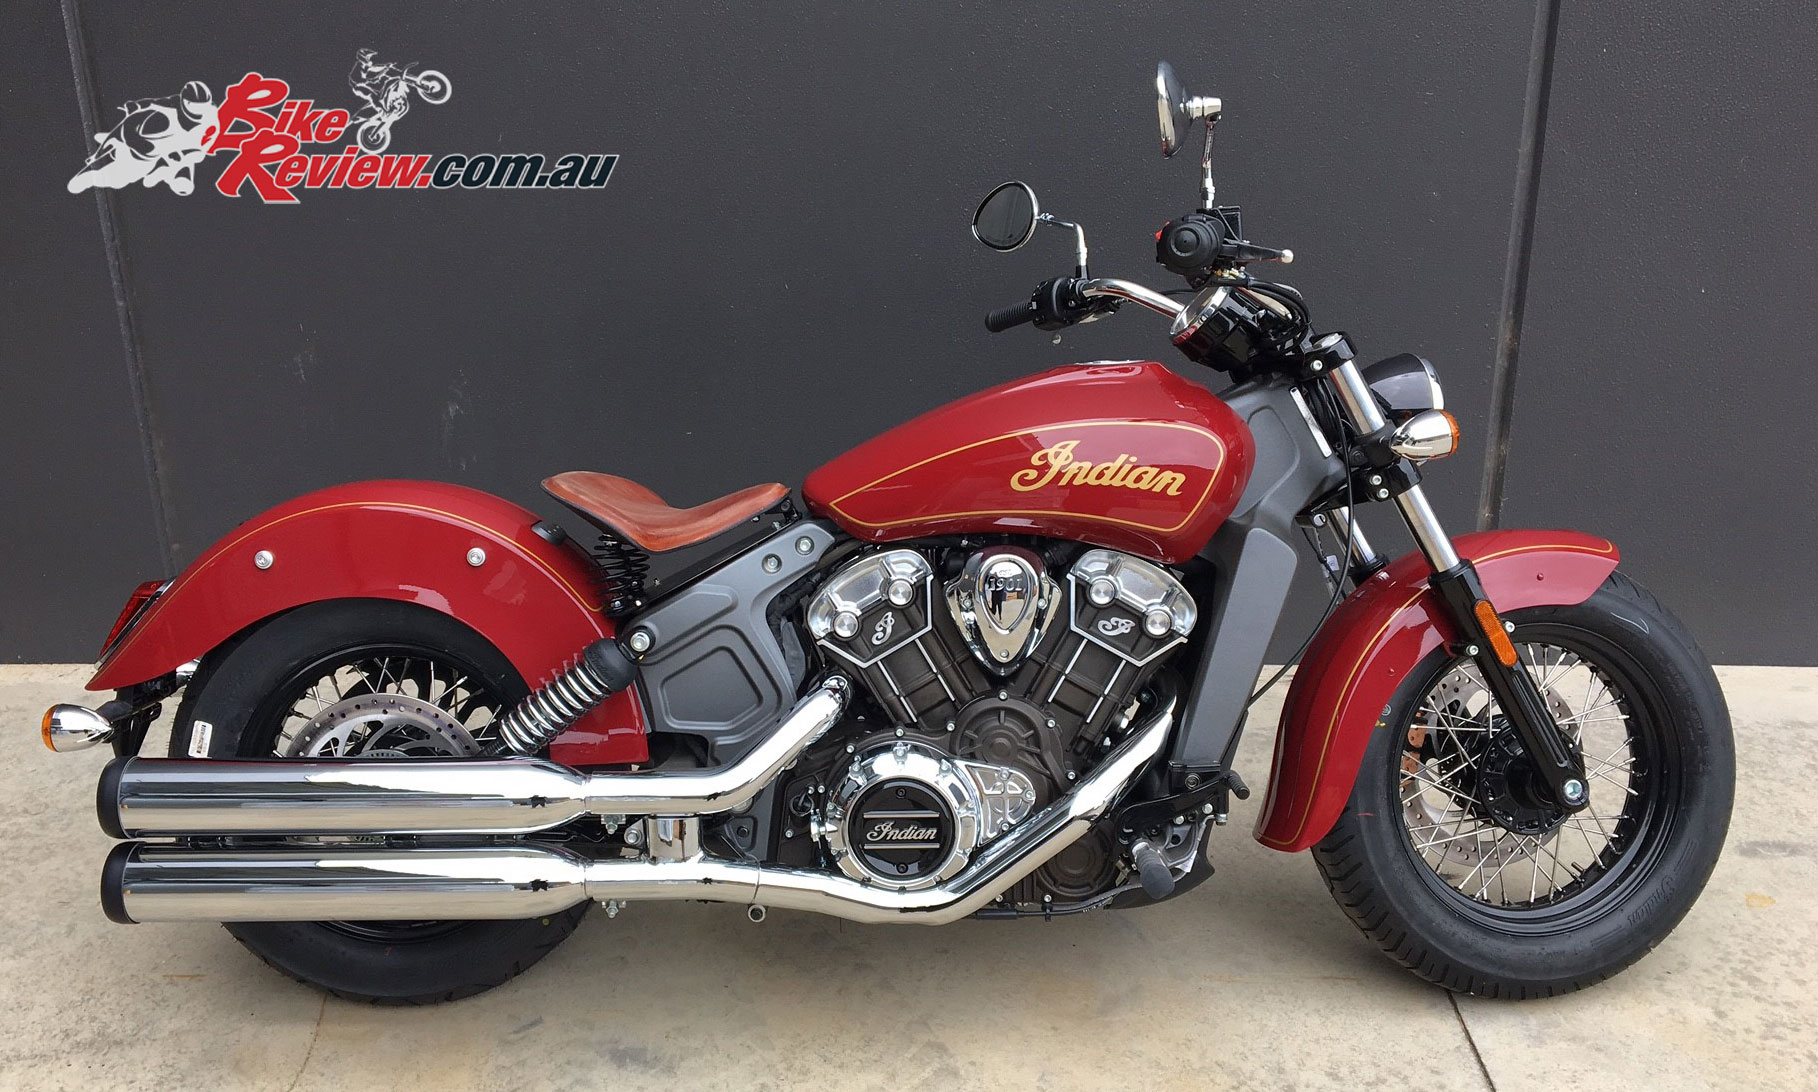 2017 Indian Scout Franklin Edition - Bike Review